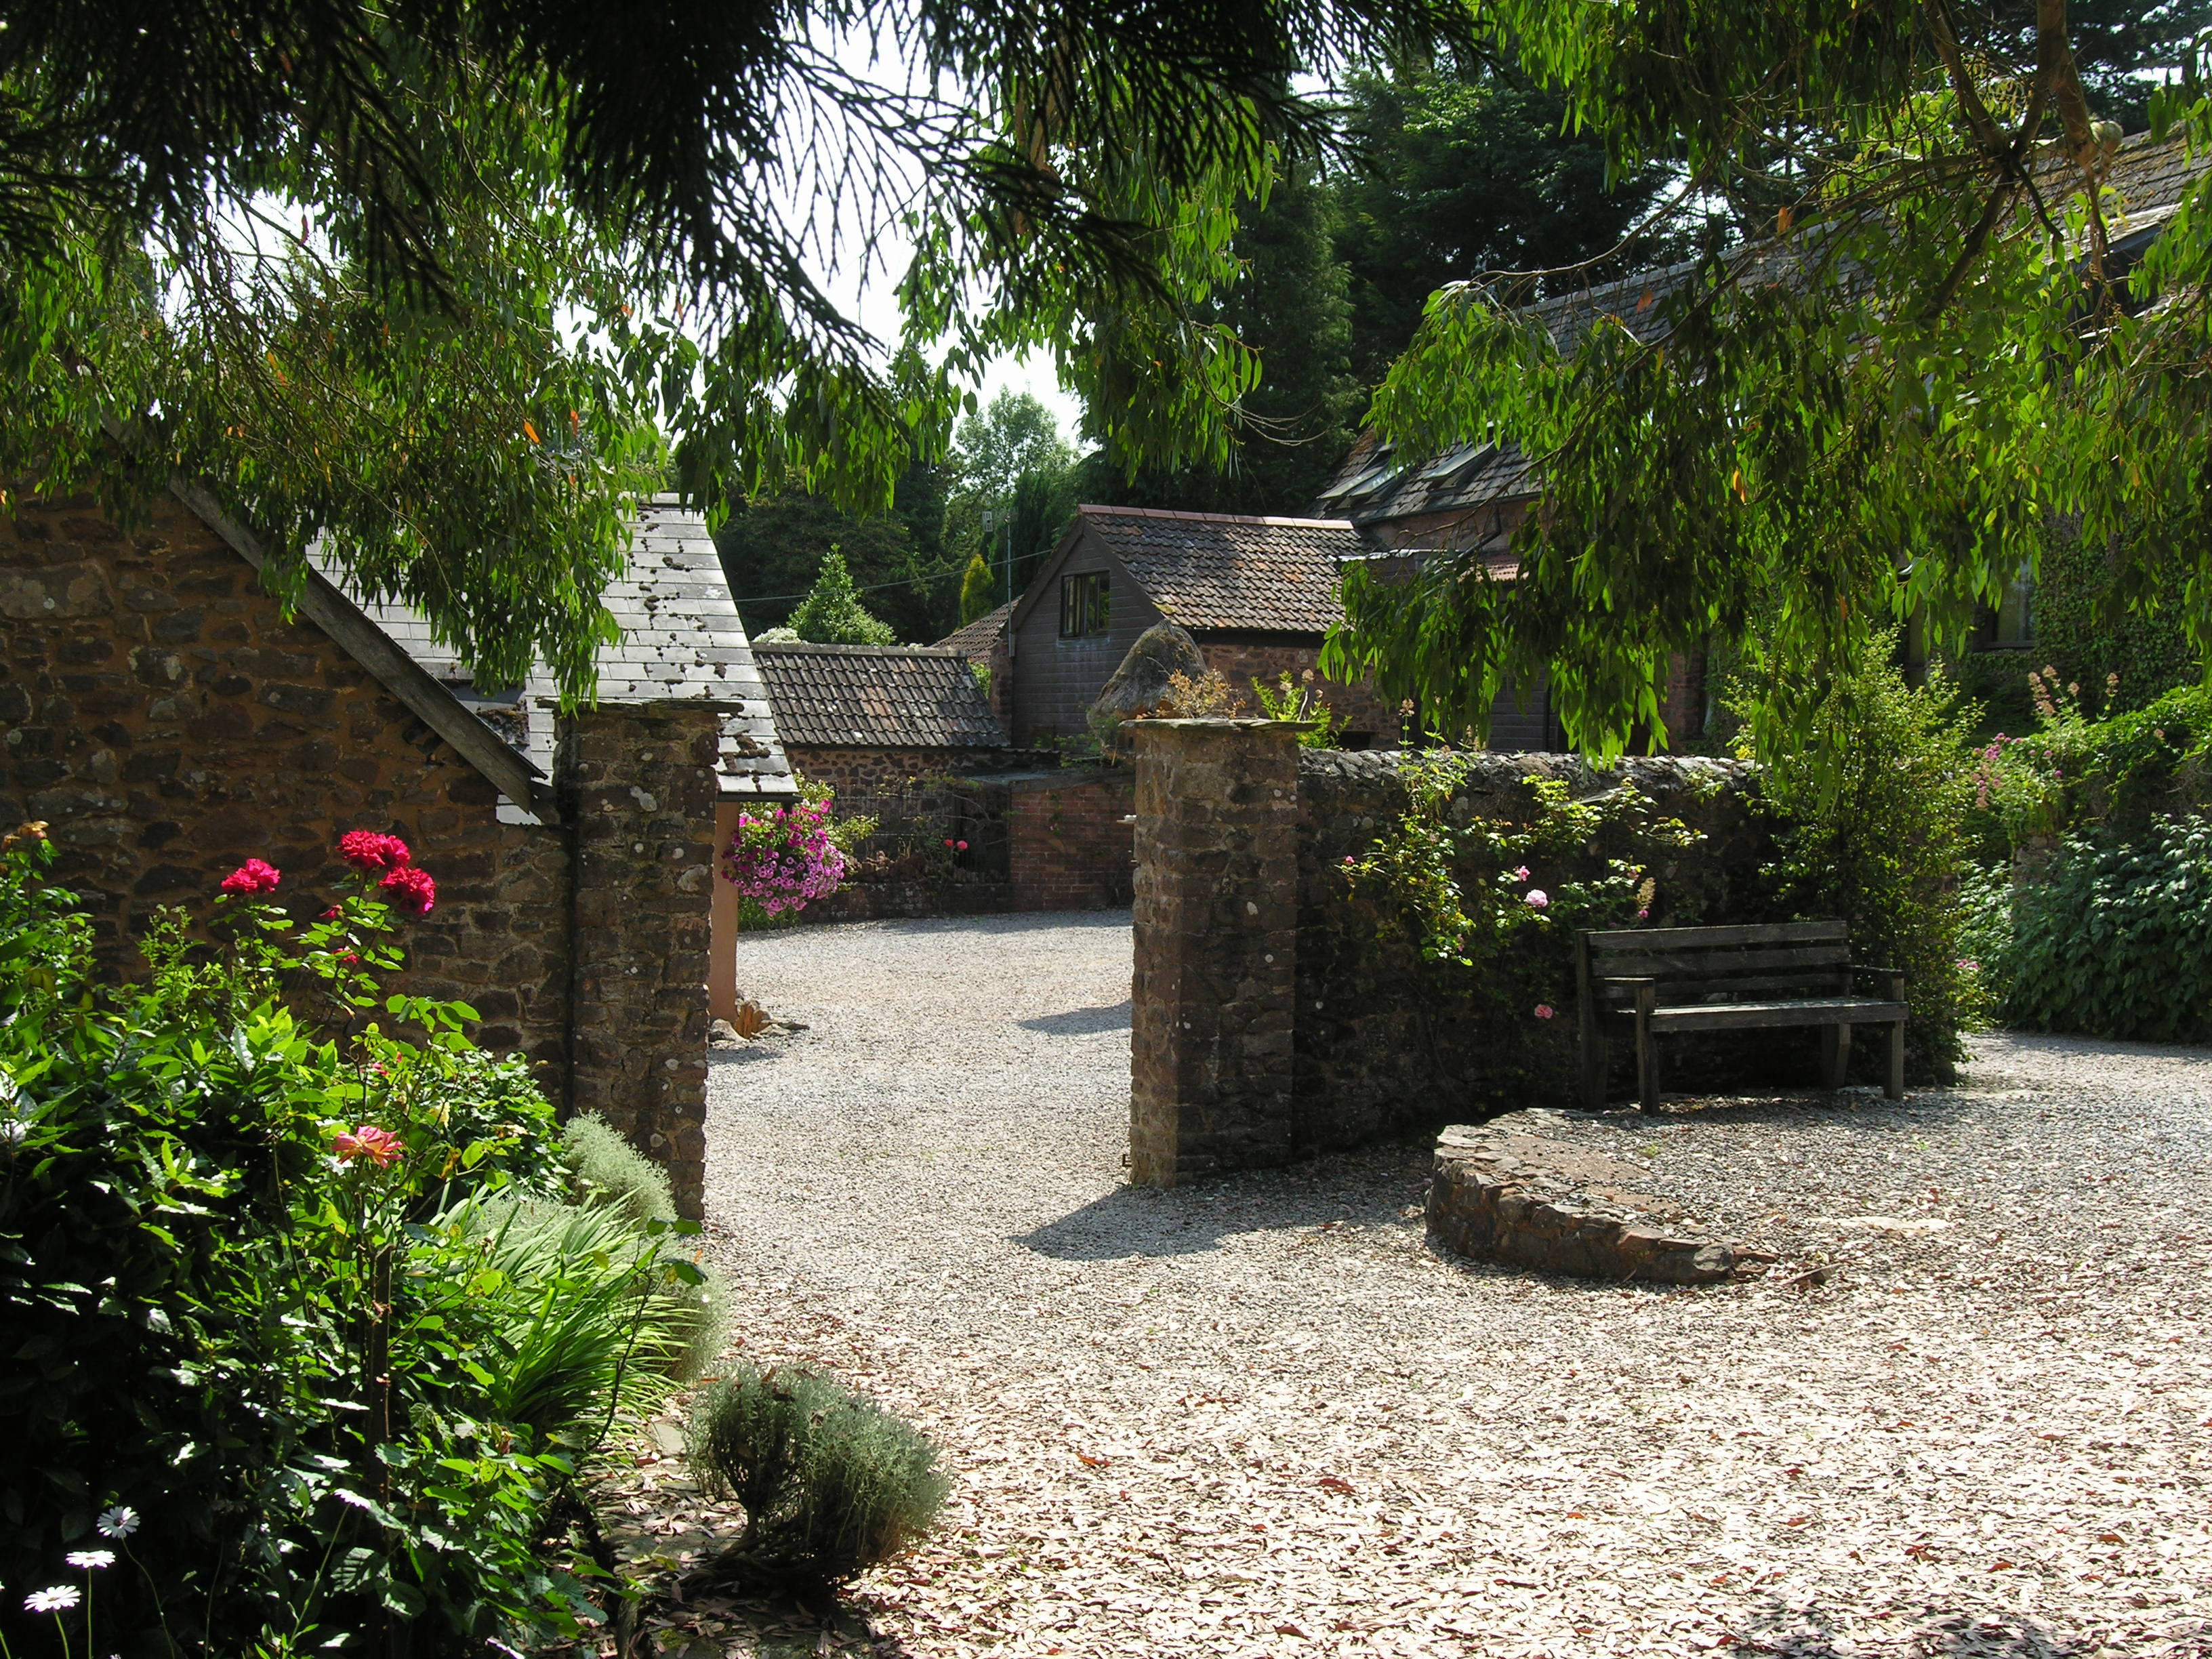 Duddings Country Cottages - Minehead, Somerset TA24 7TB - 01643 841123 | ShowMeLocal.com